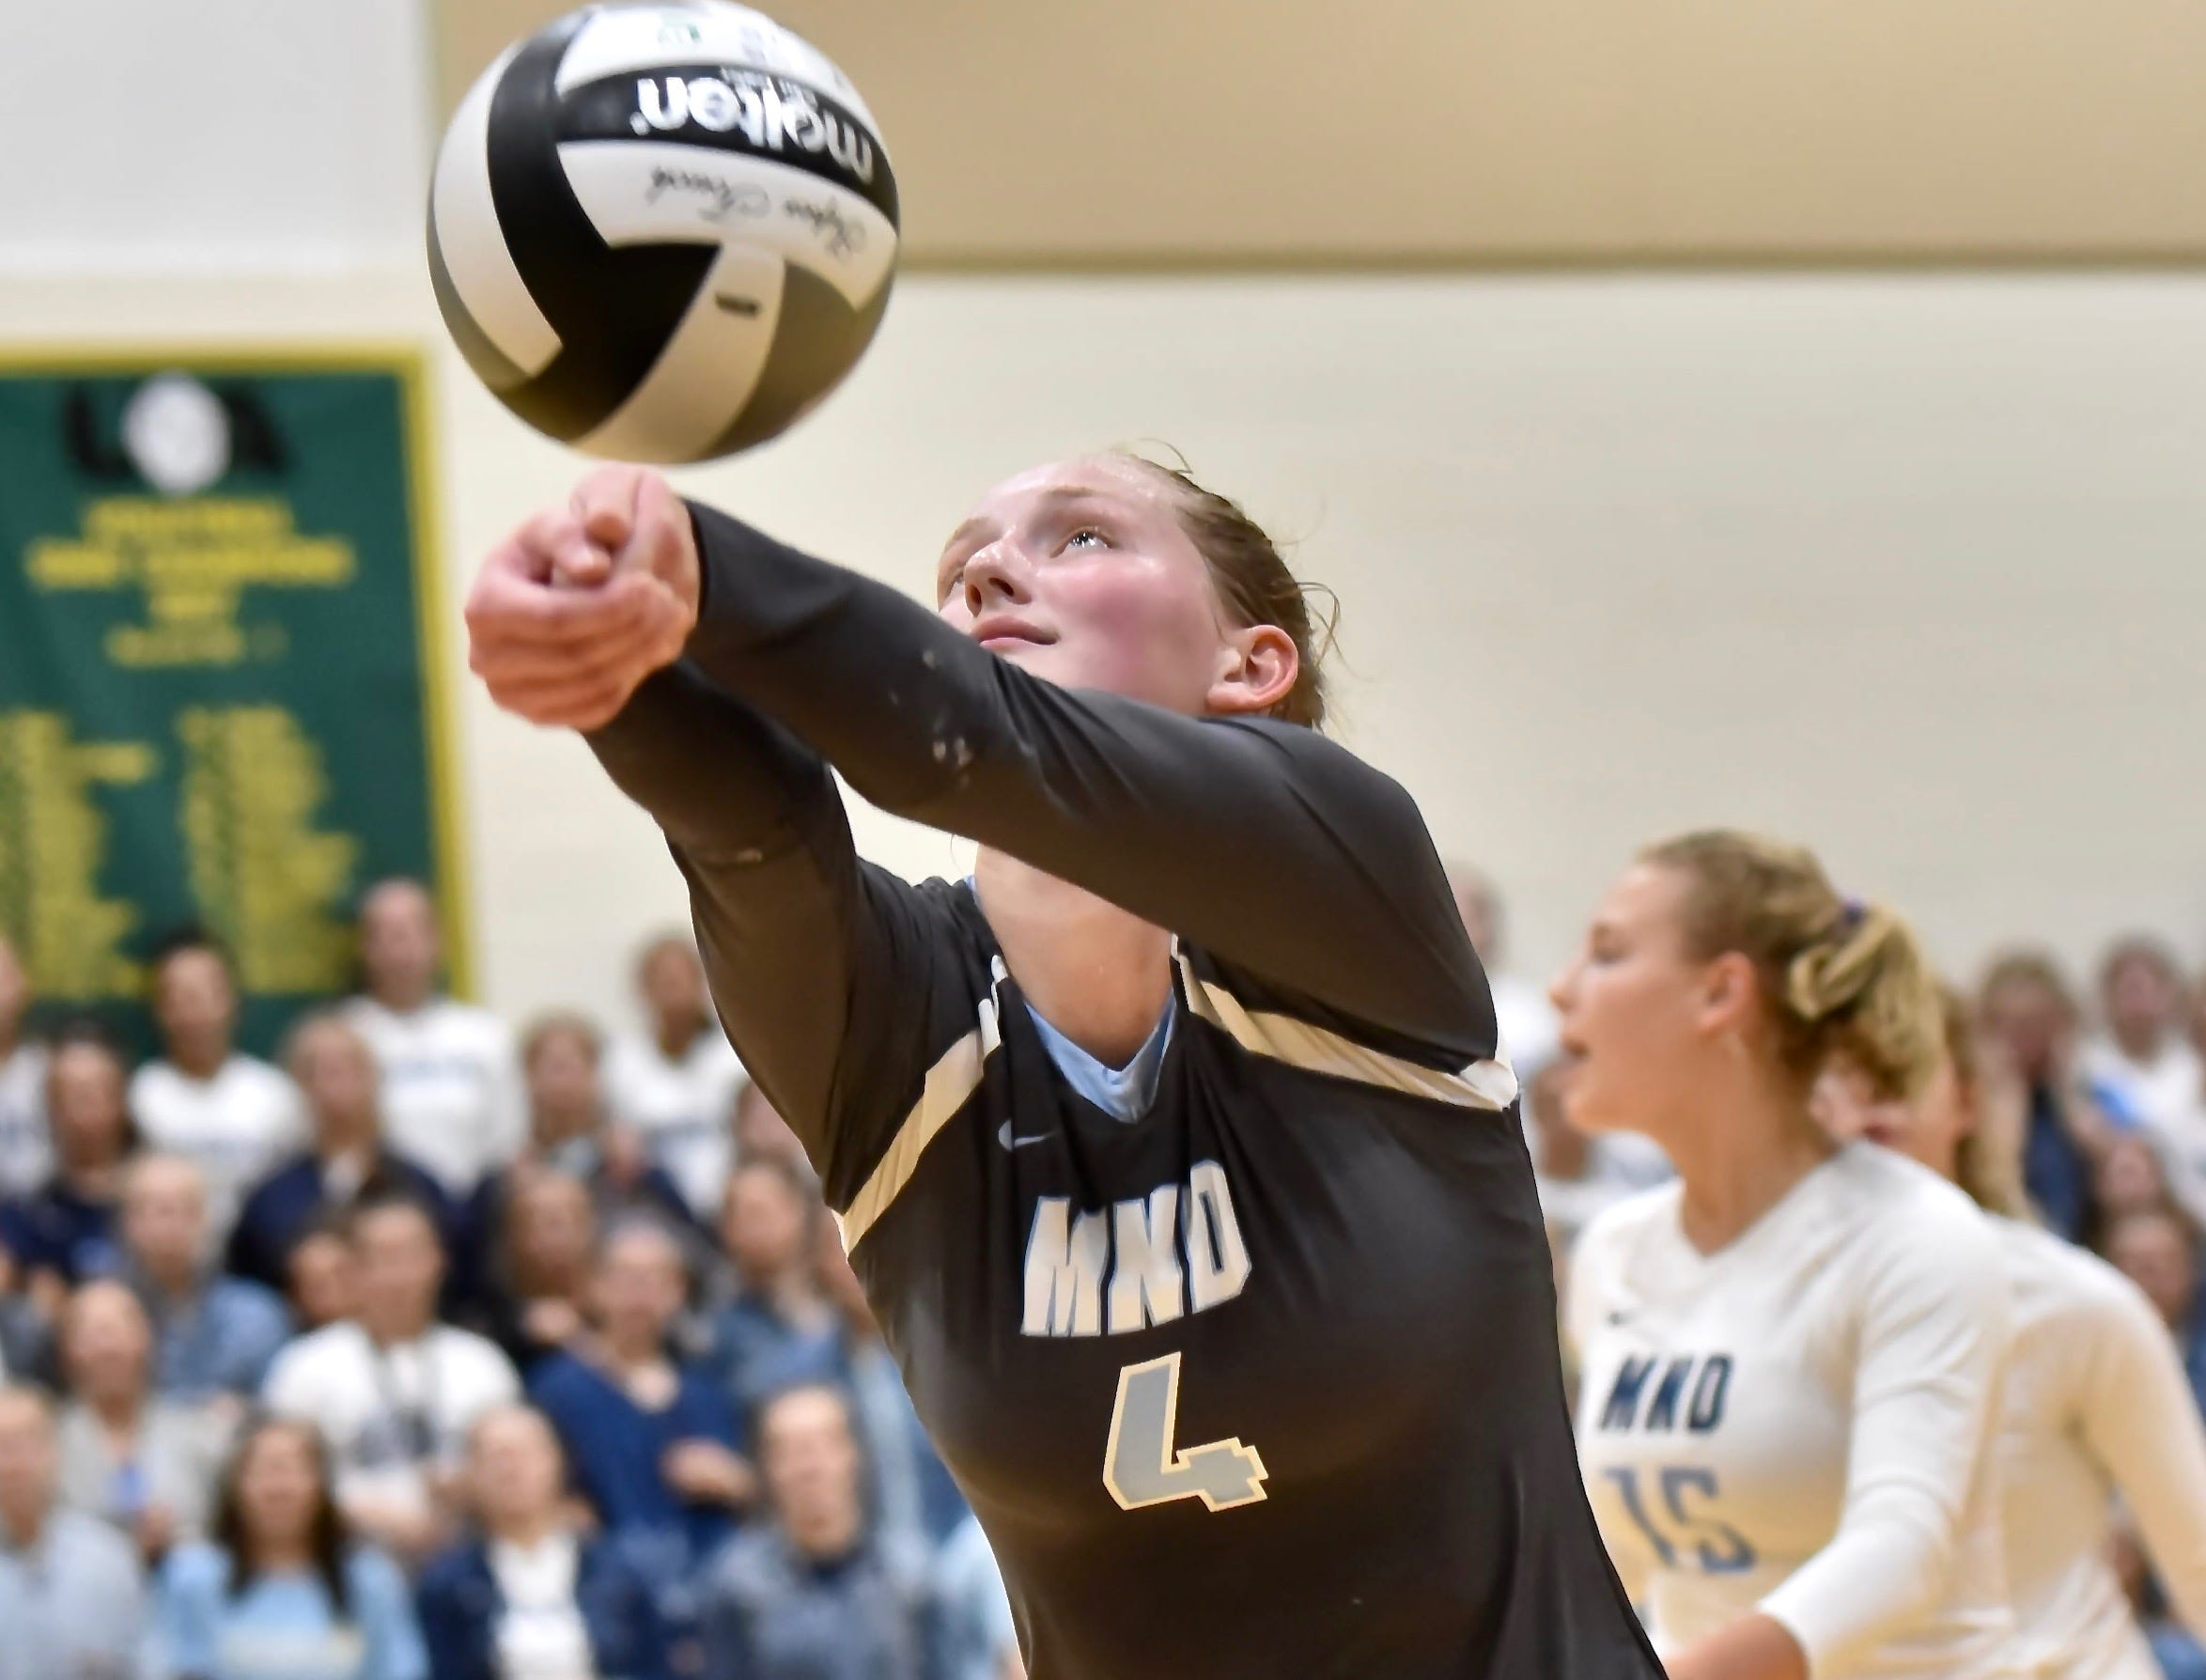 Mount Notre Dame's Emily Ernst saves a ball against Ursuline Tuesday, Sept. 11, 2018 at Ursuline Academy